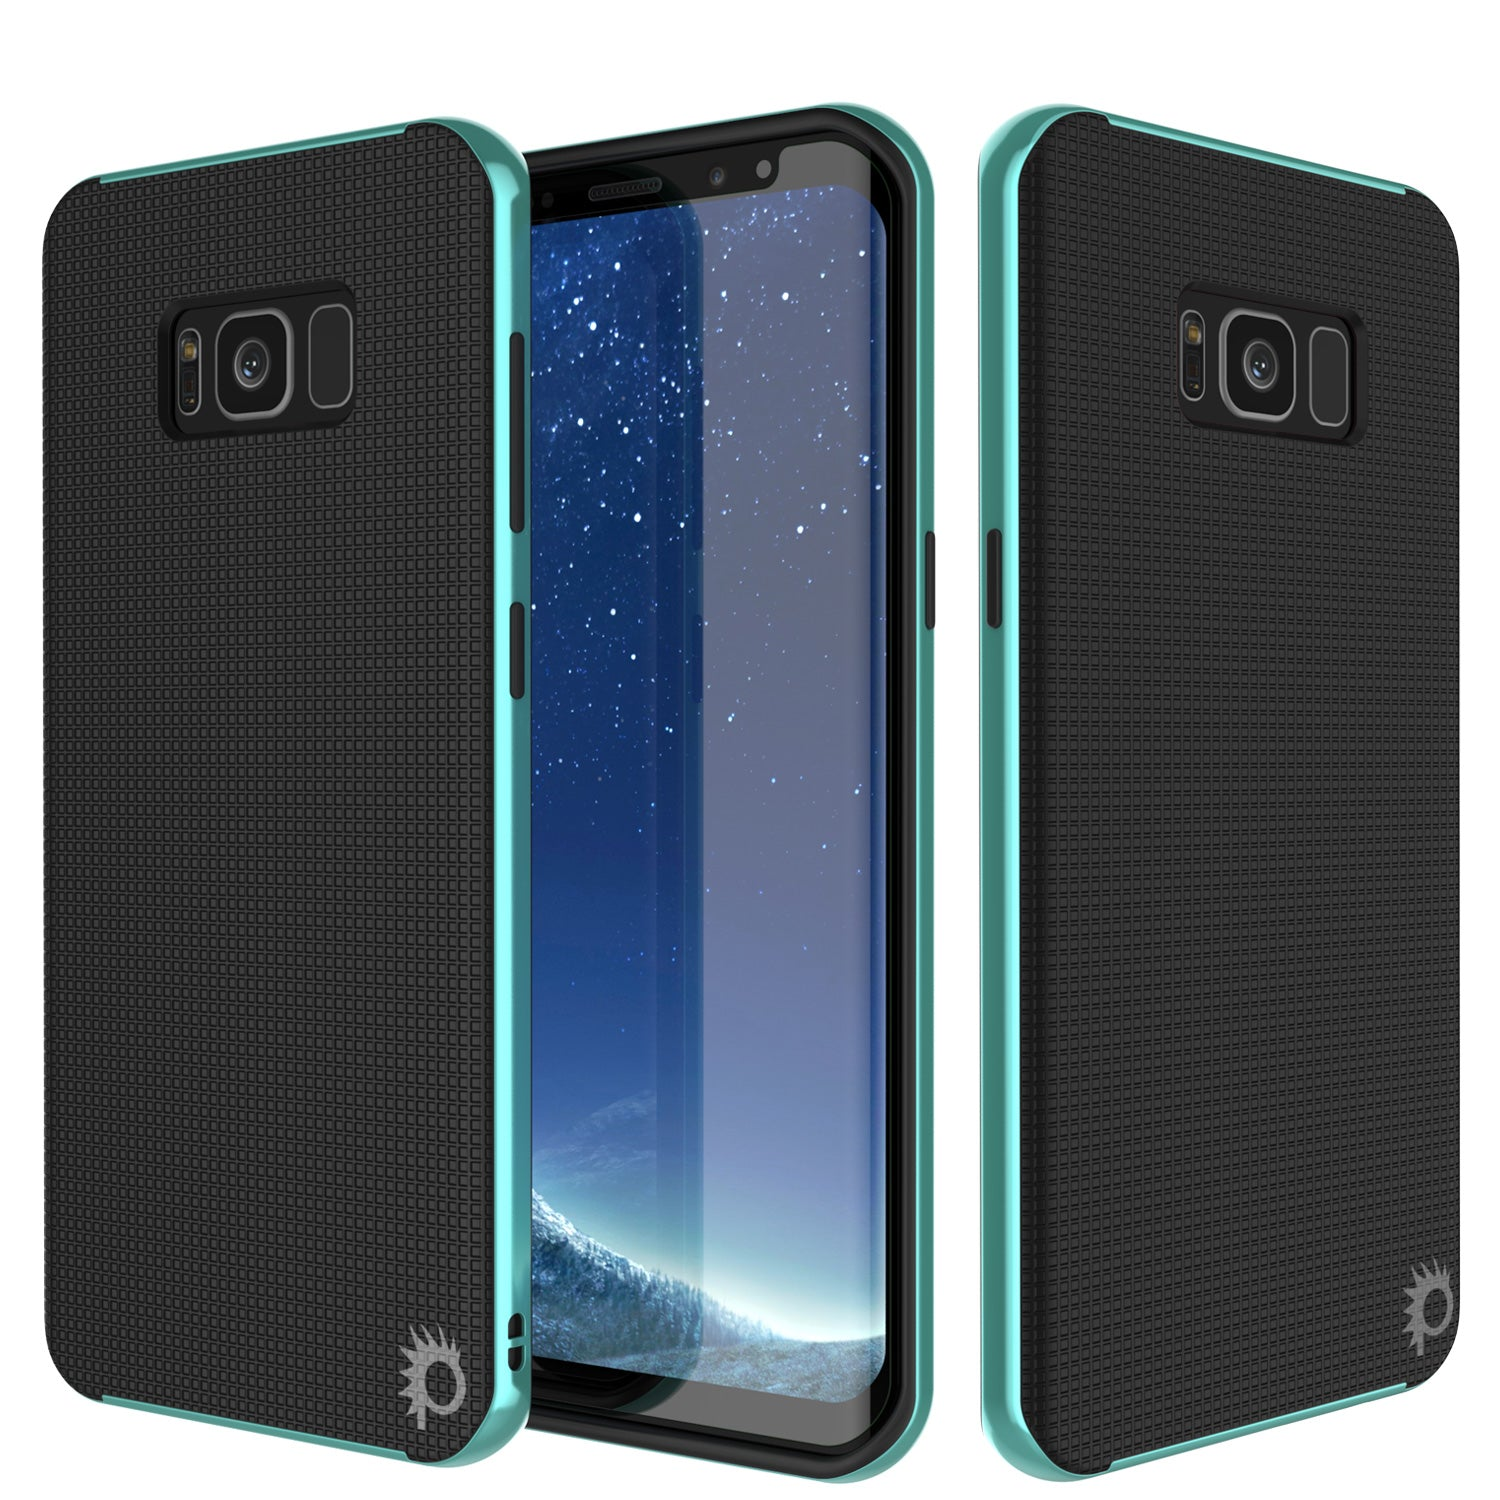 Galaxy S8 PLUS Case, PunkCase Stealth Teal Series Hybrid 3-Piece Shockproof Dual Layer Cover